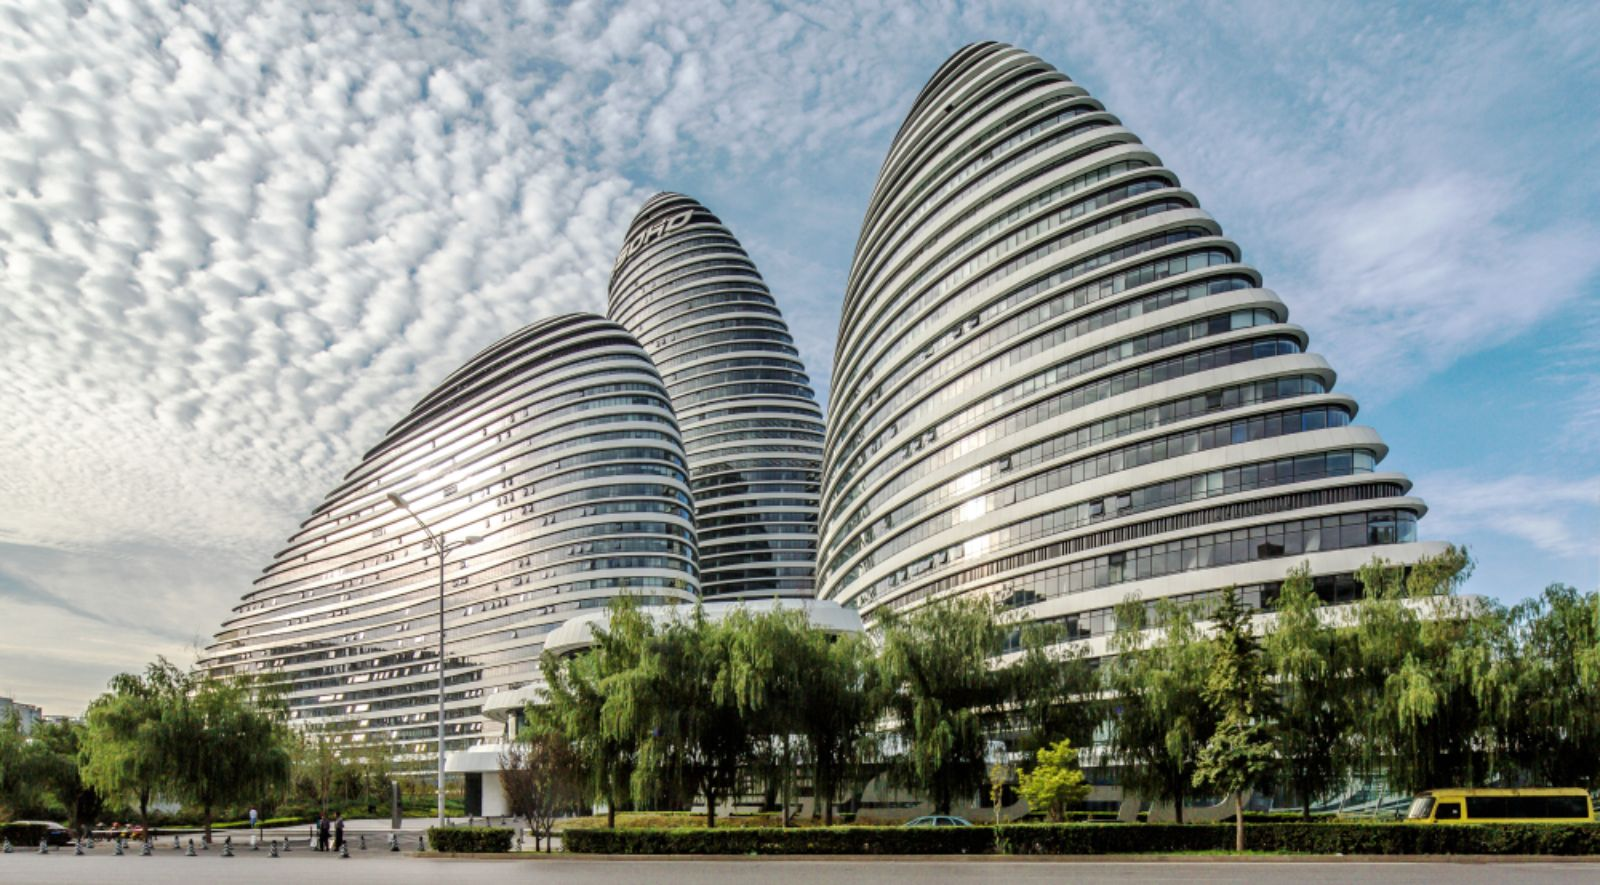 Wangjing soho by zaha hadid architects receives the zhan for Architecture zaha hadid